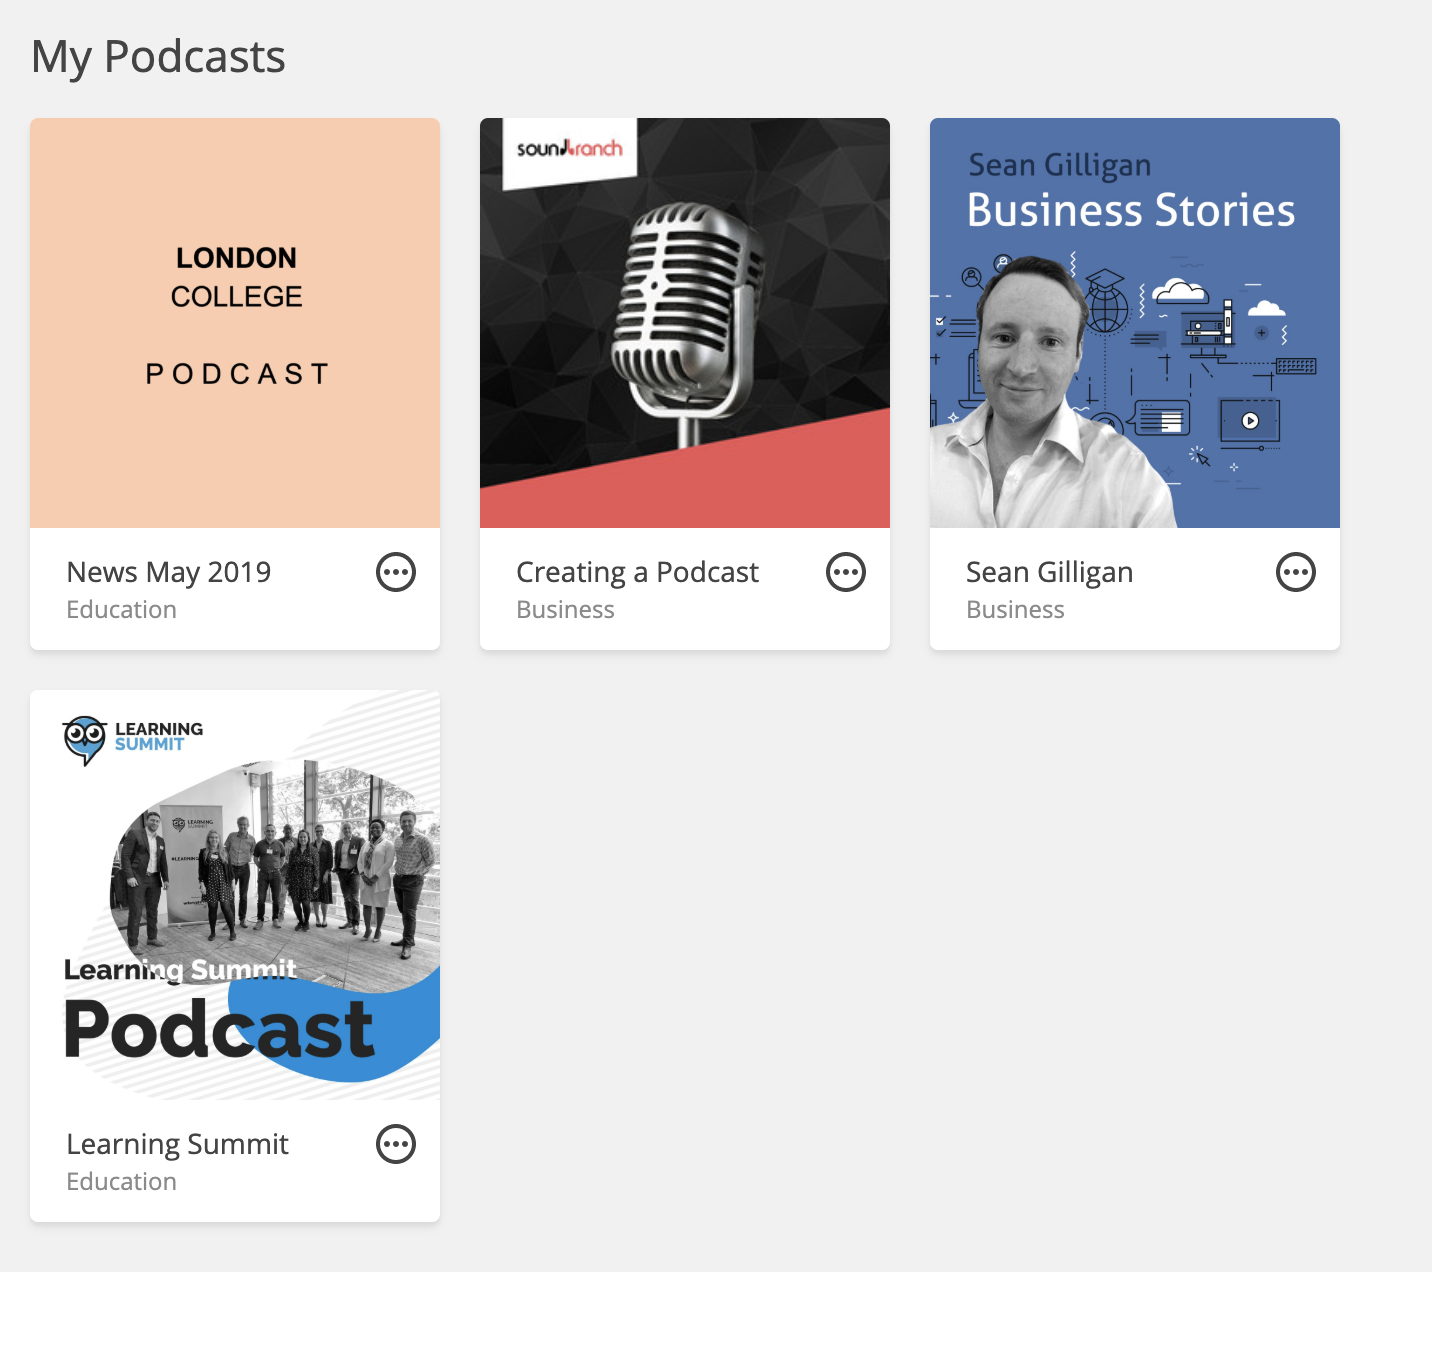 create your online podcast with Sound Branch